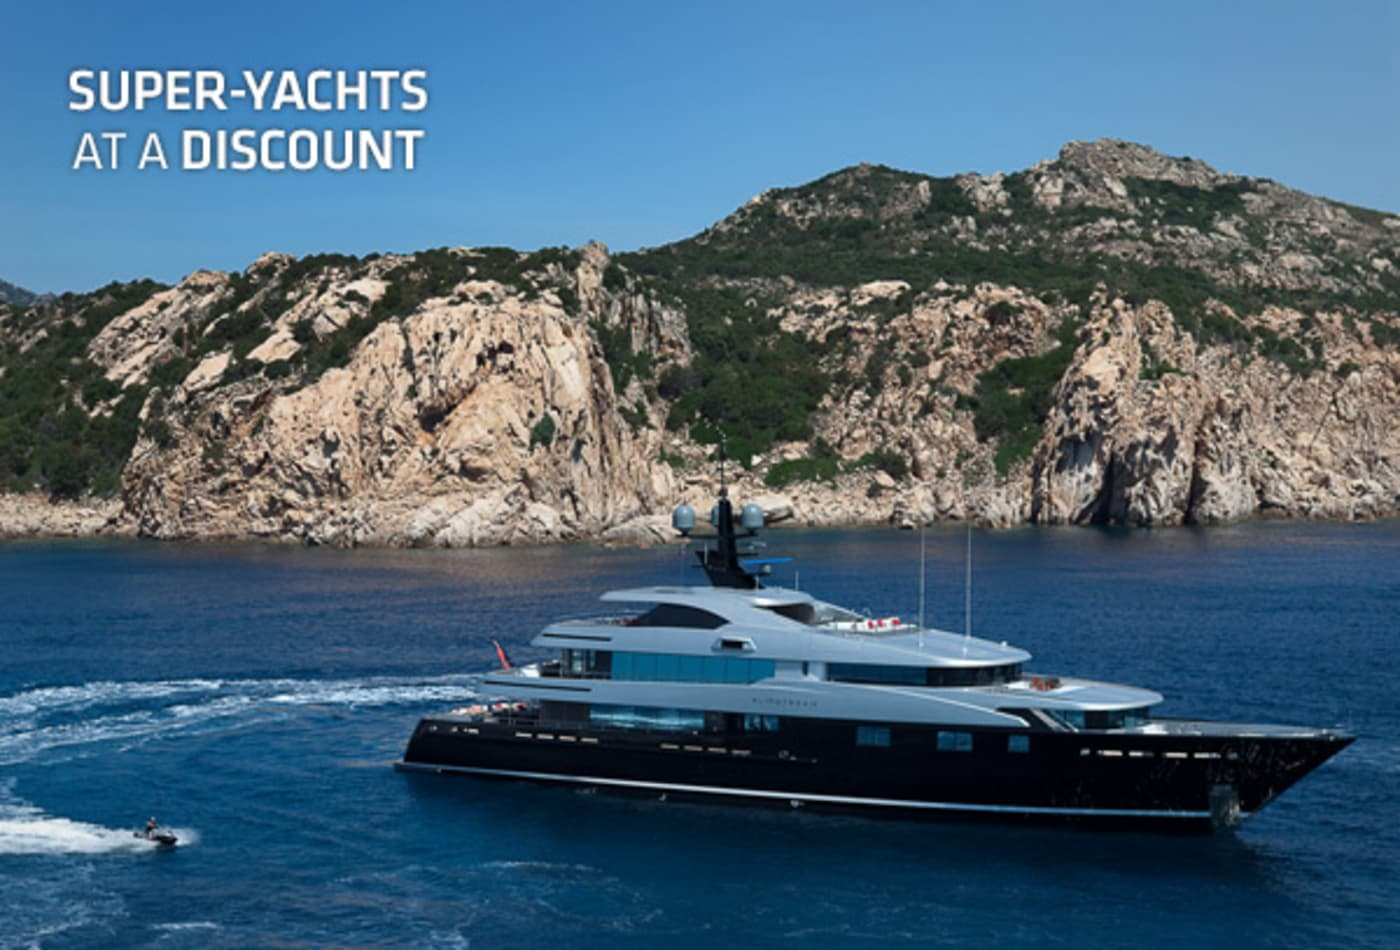 Yachts-at-a-discount-cover3.jpg